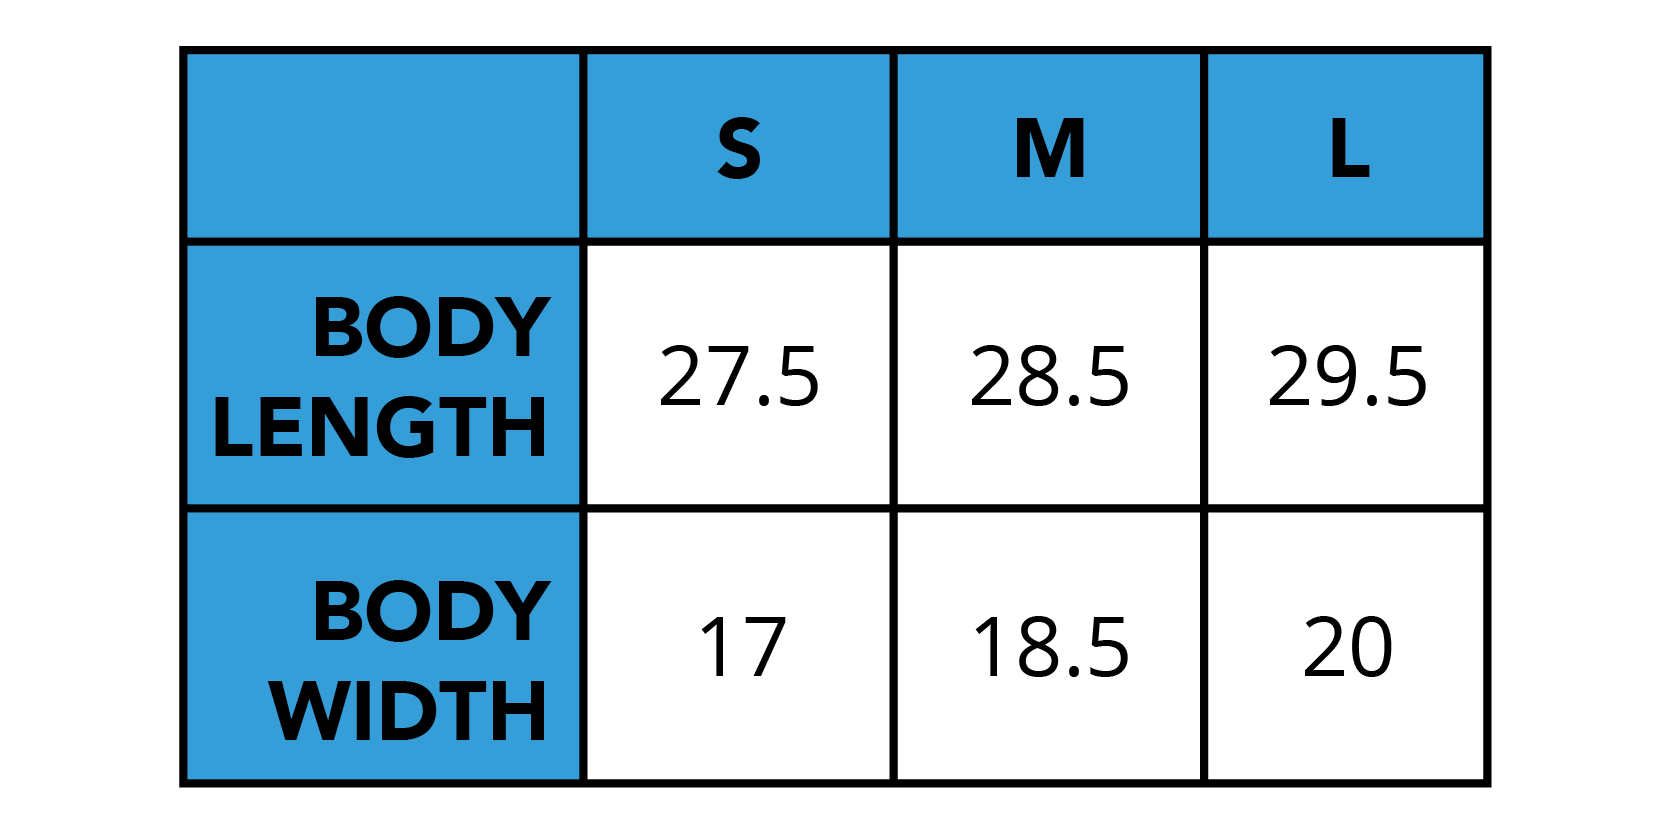 A sizing chart outlining the correct sizes for tank purchases.